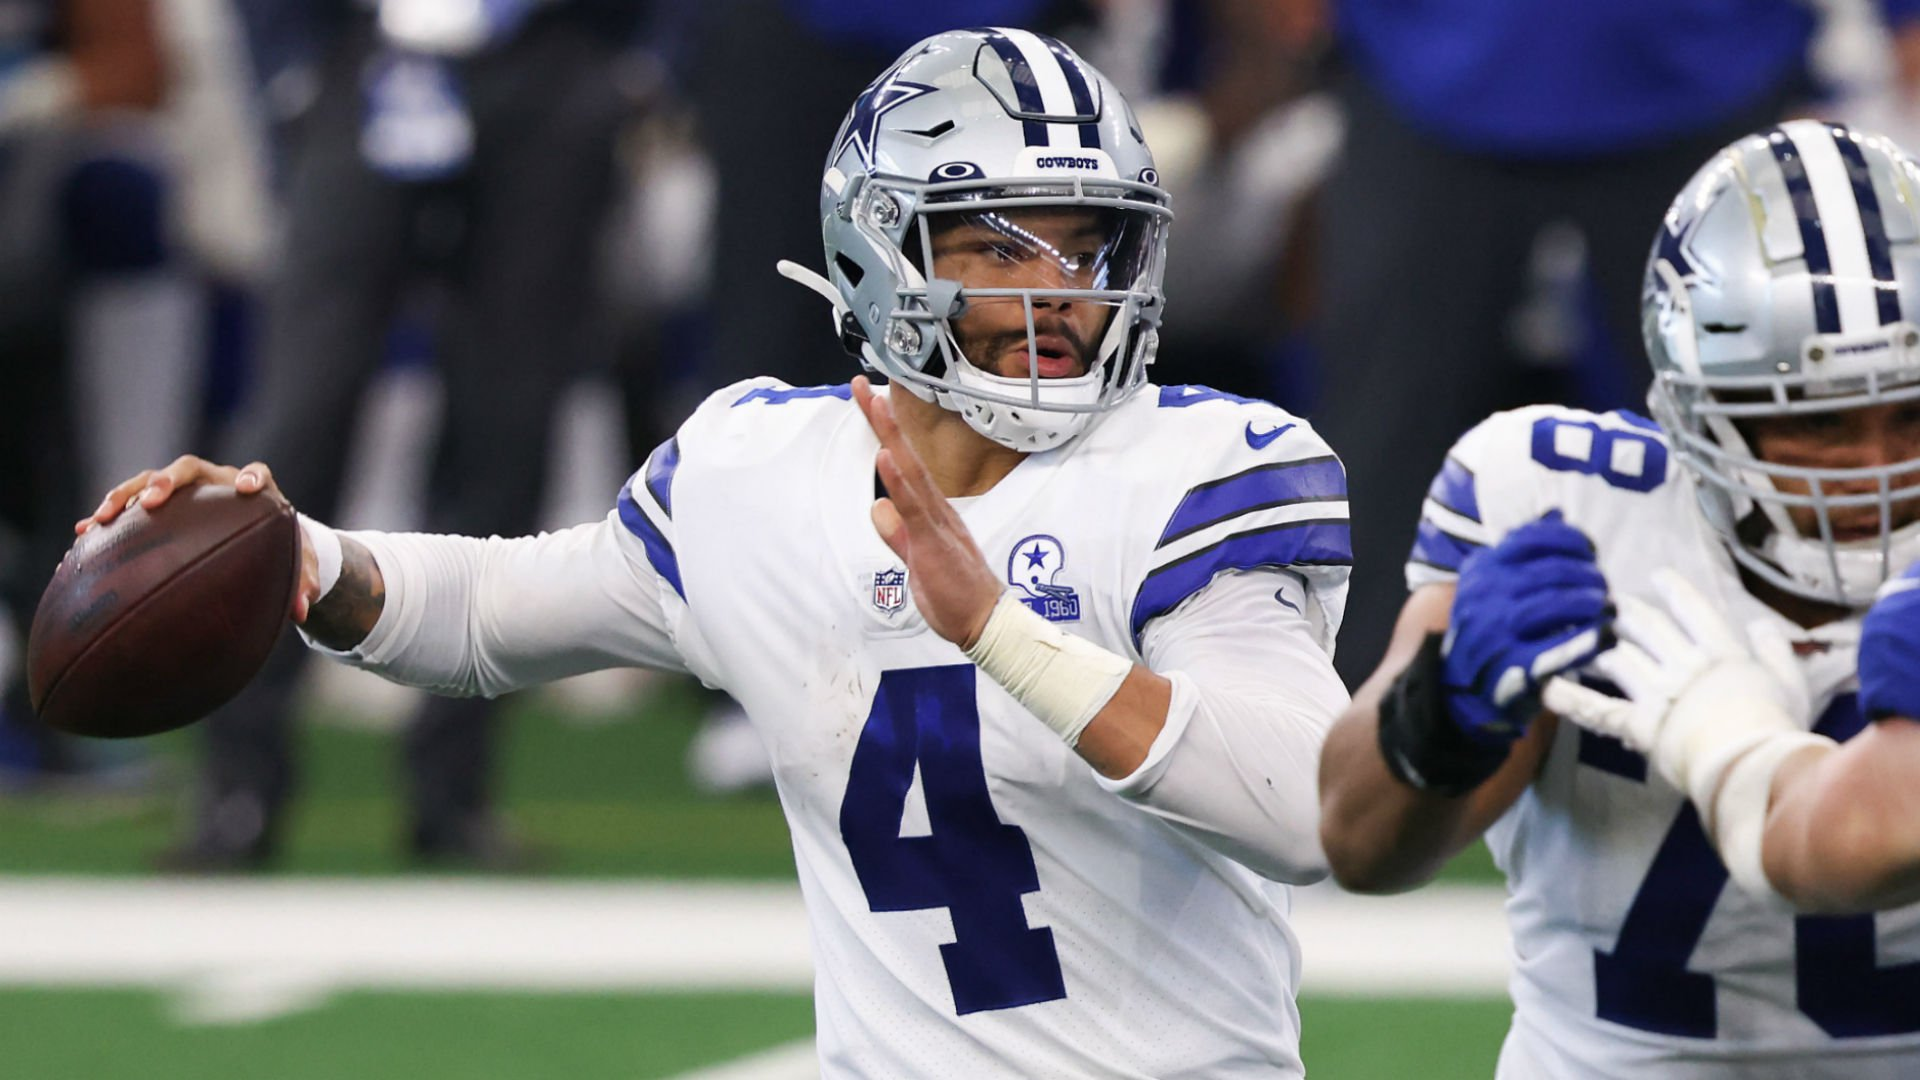 Philadelphia Eagles vs Dallas Cowboys Preview: First Place in the NFC East on the Line as Cowboys Host Eagles